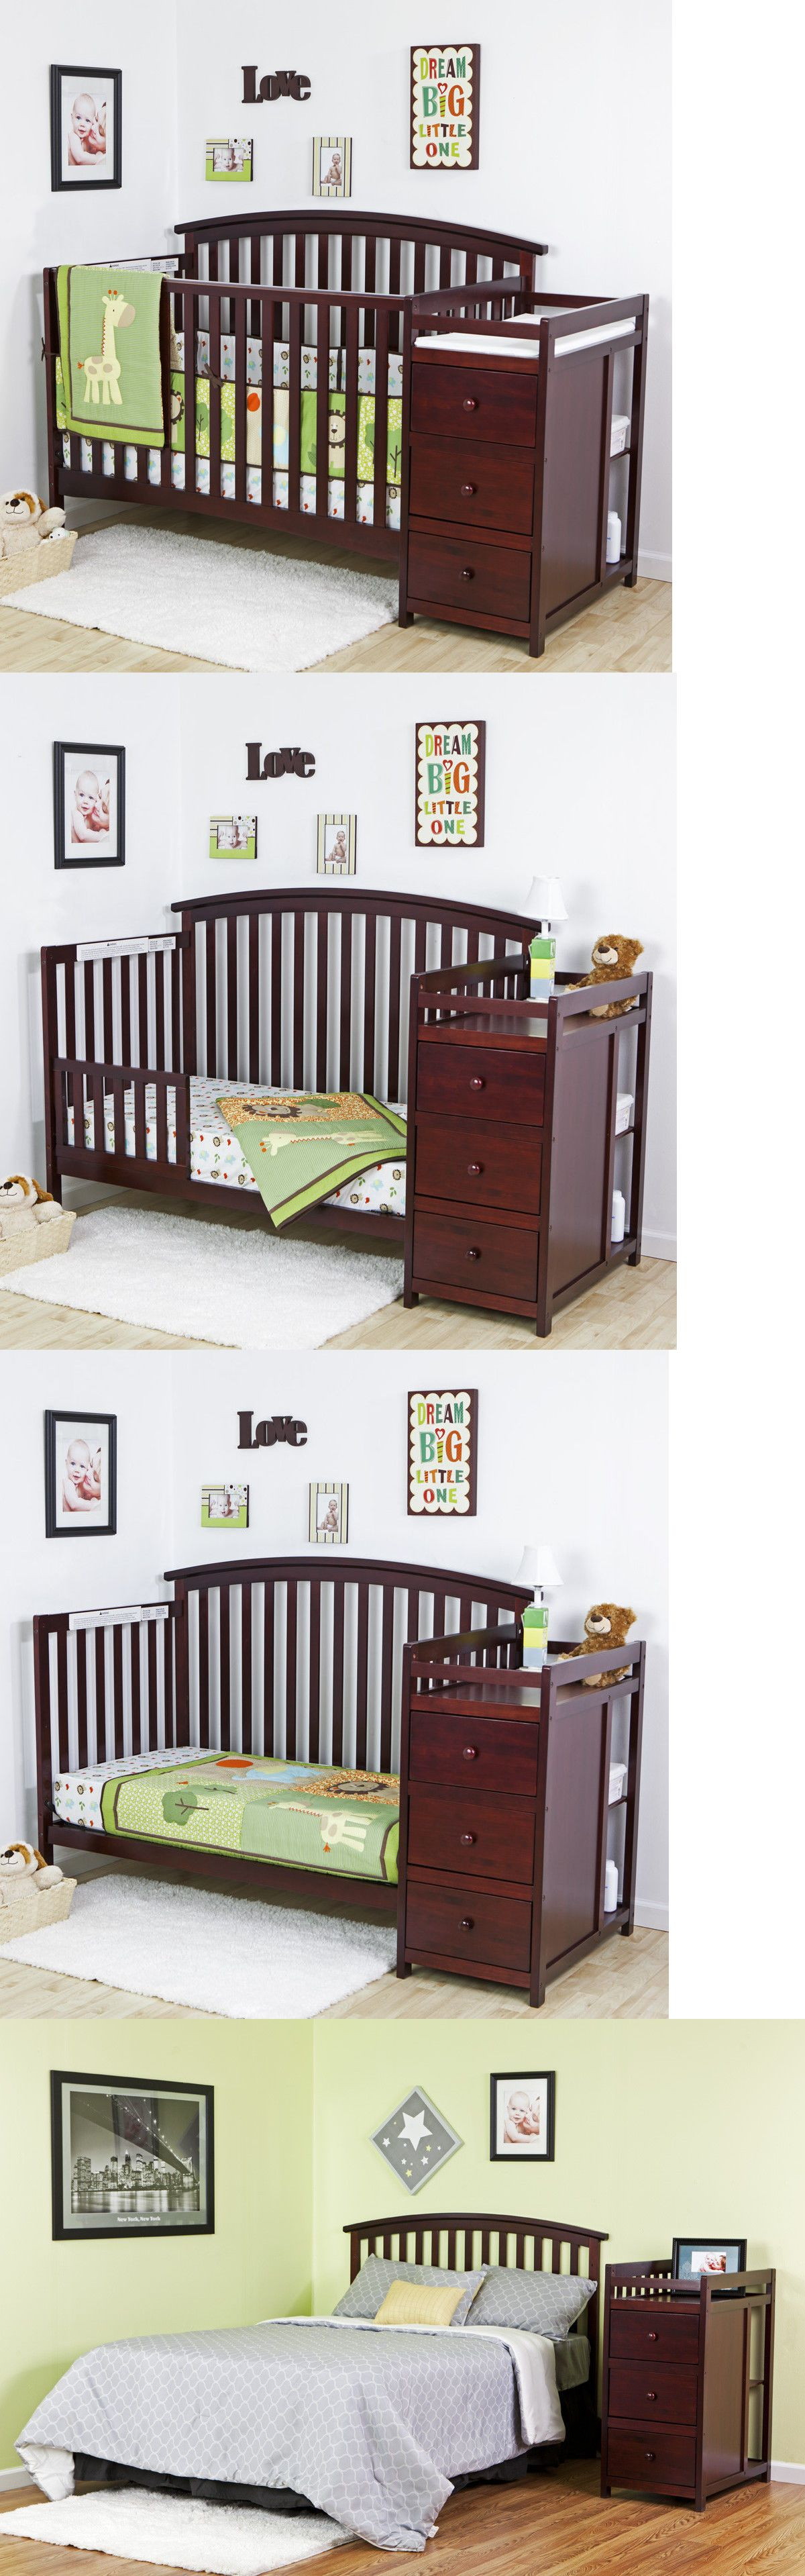 Cribs 2985: 5 In 1 Side Convertible Crib Changer Nursery Furniture ...